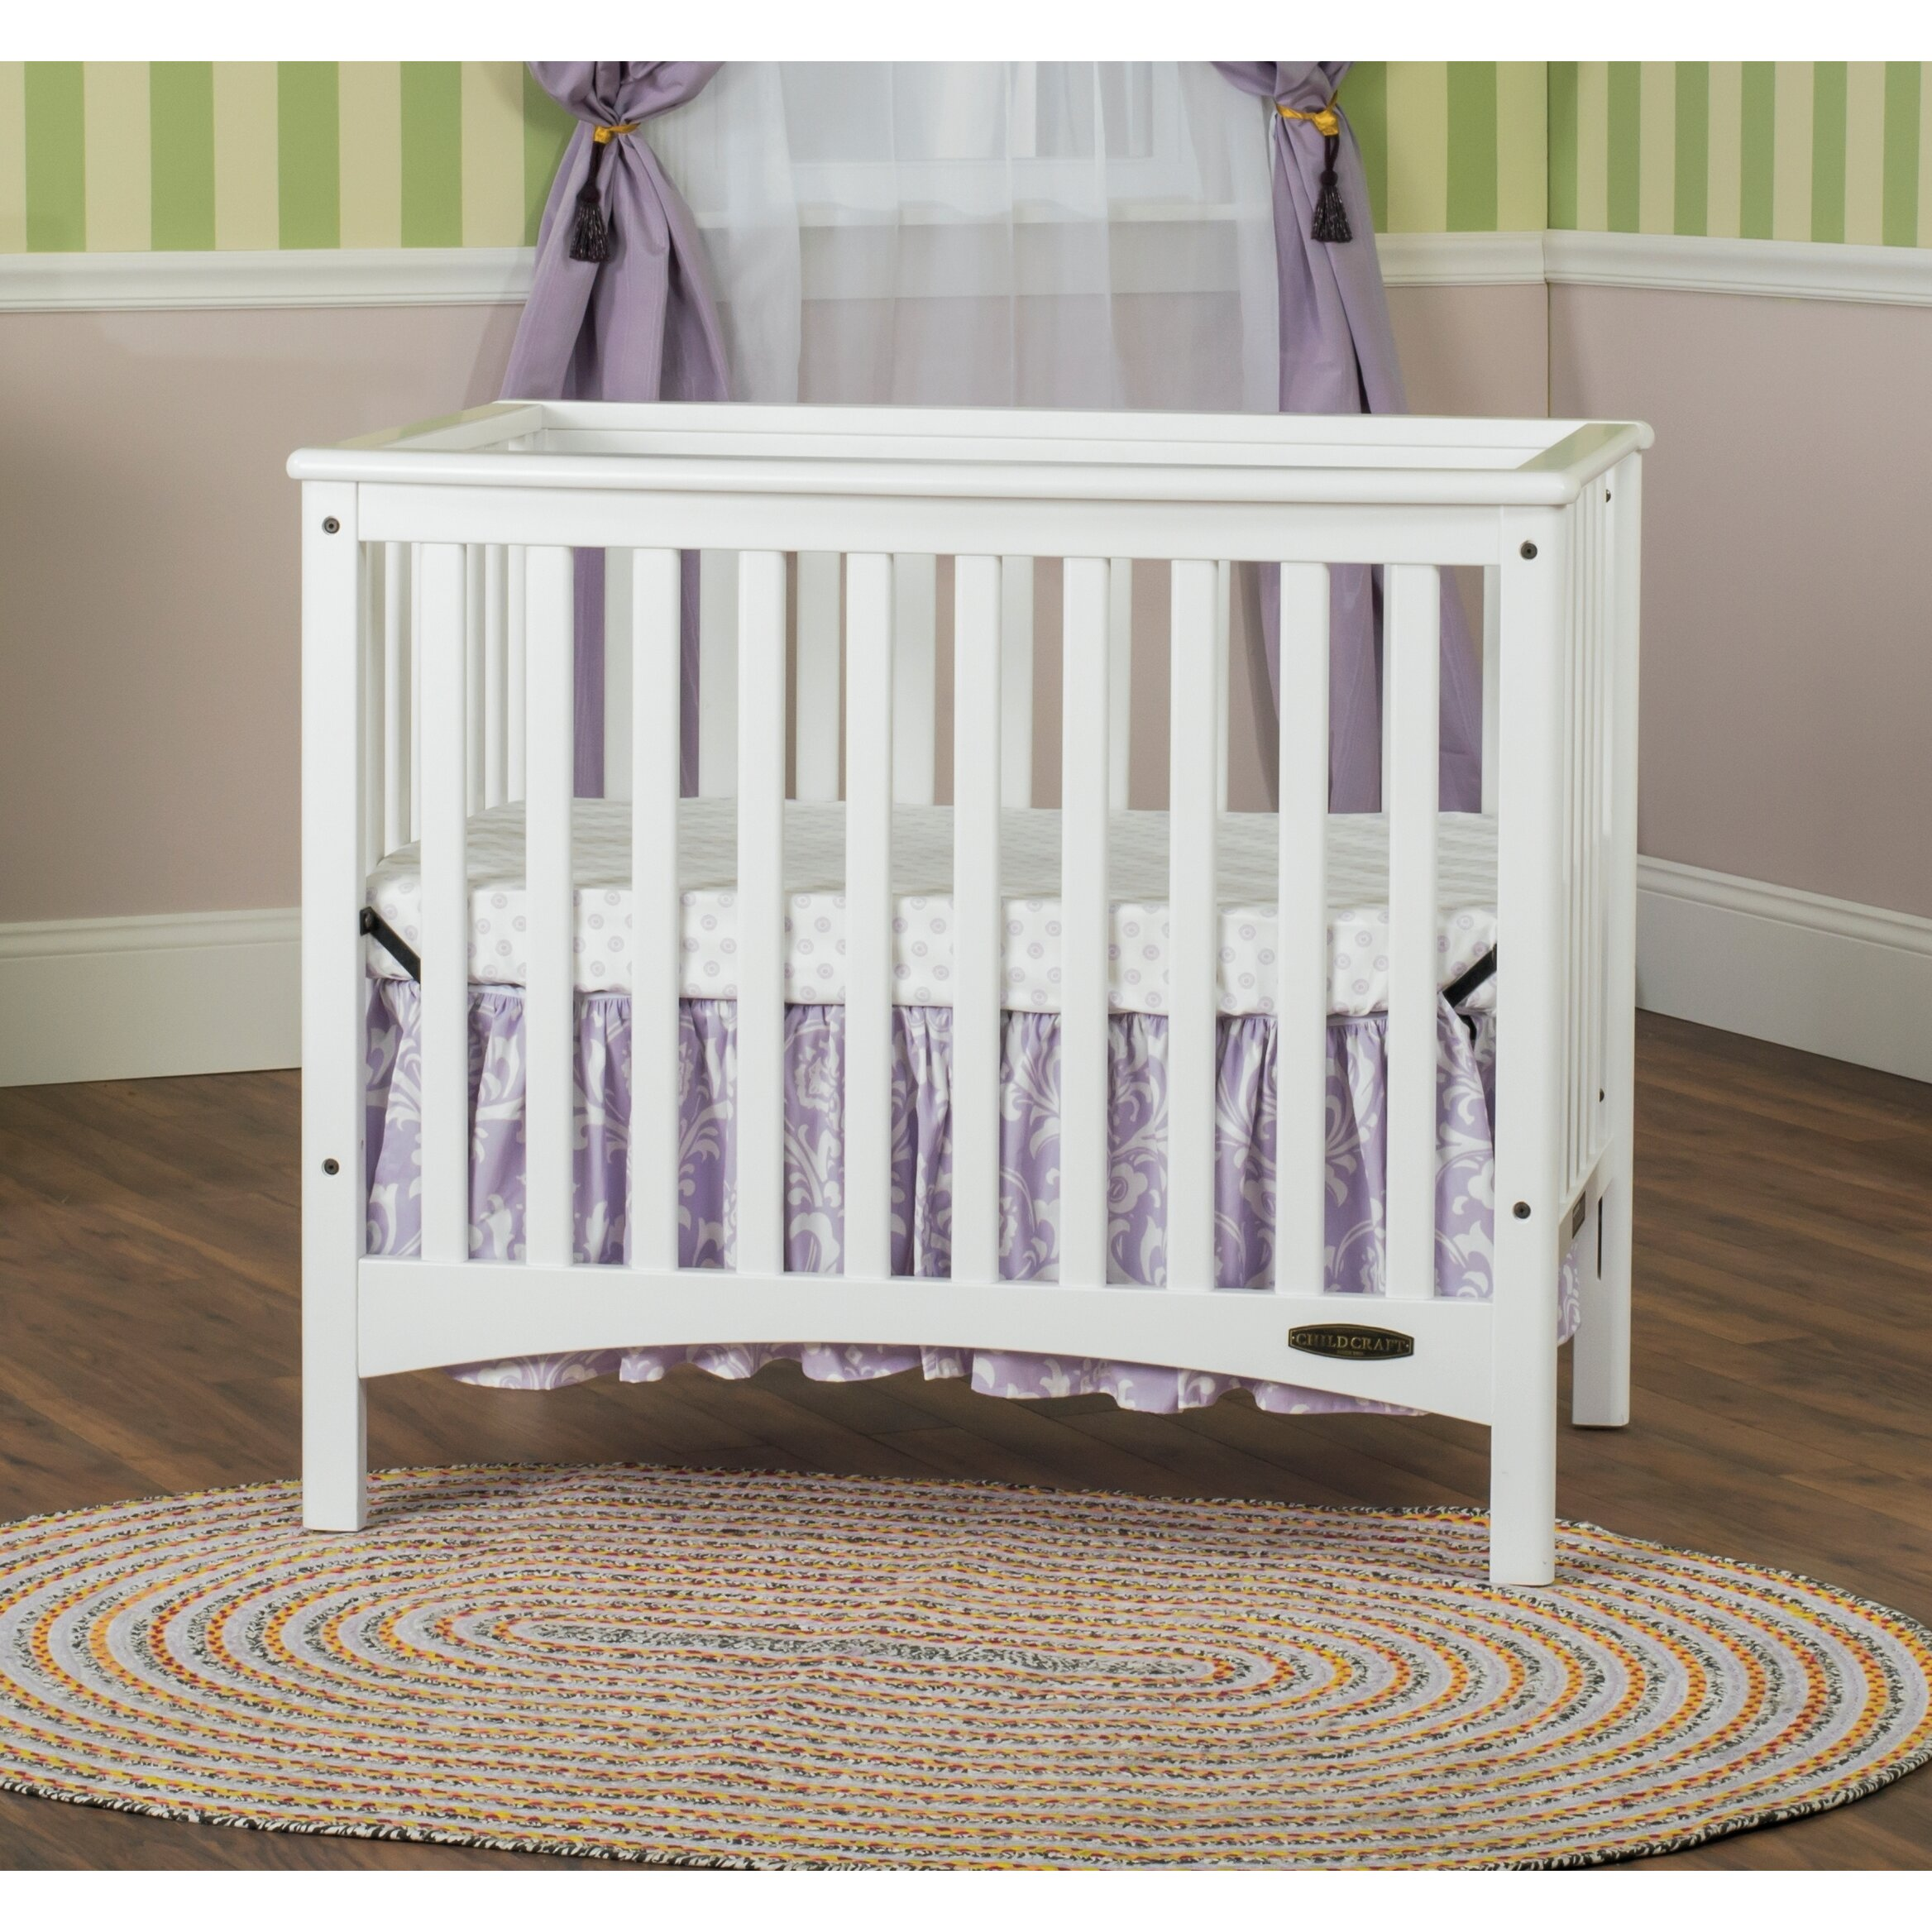 Child craft london euro mini convertible crib with for Child craft crib reviews